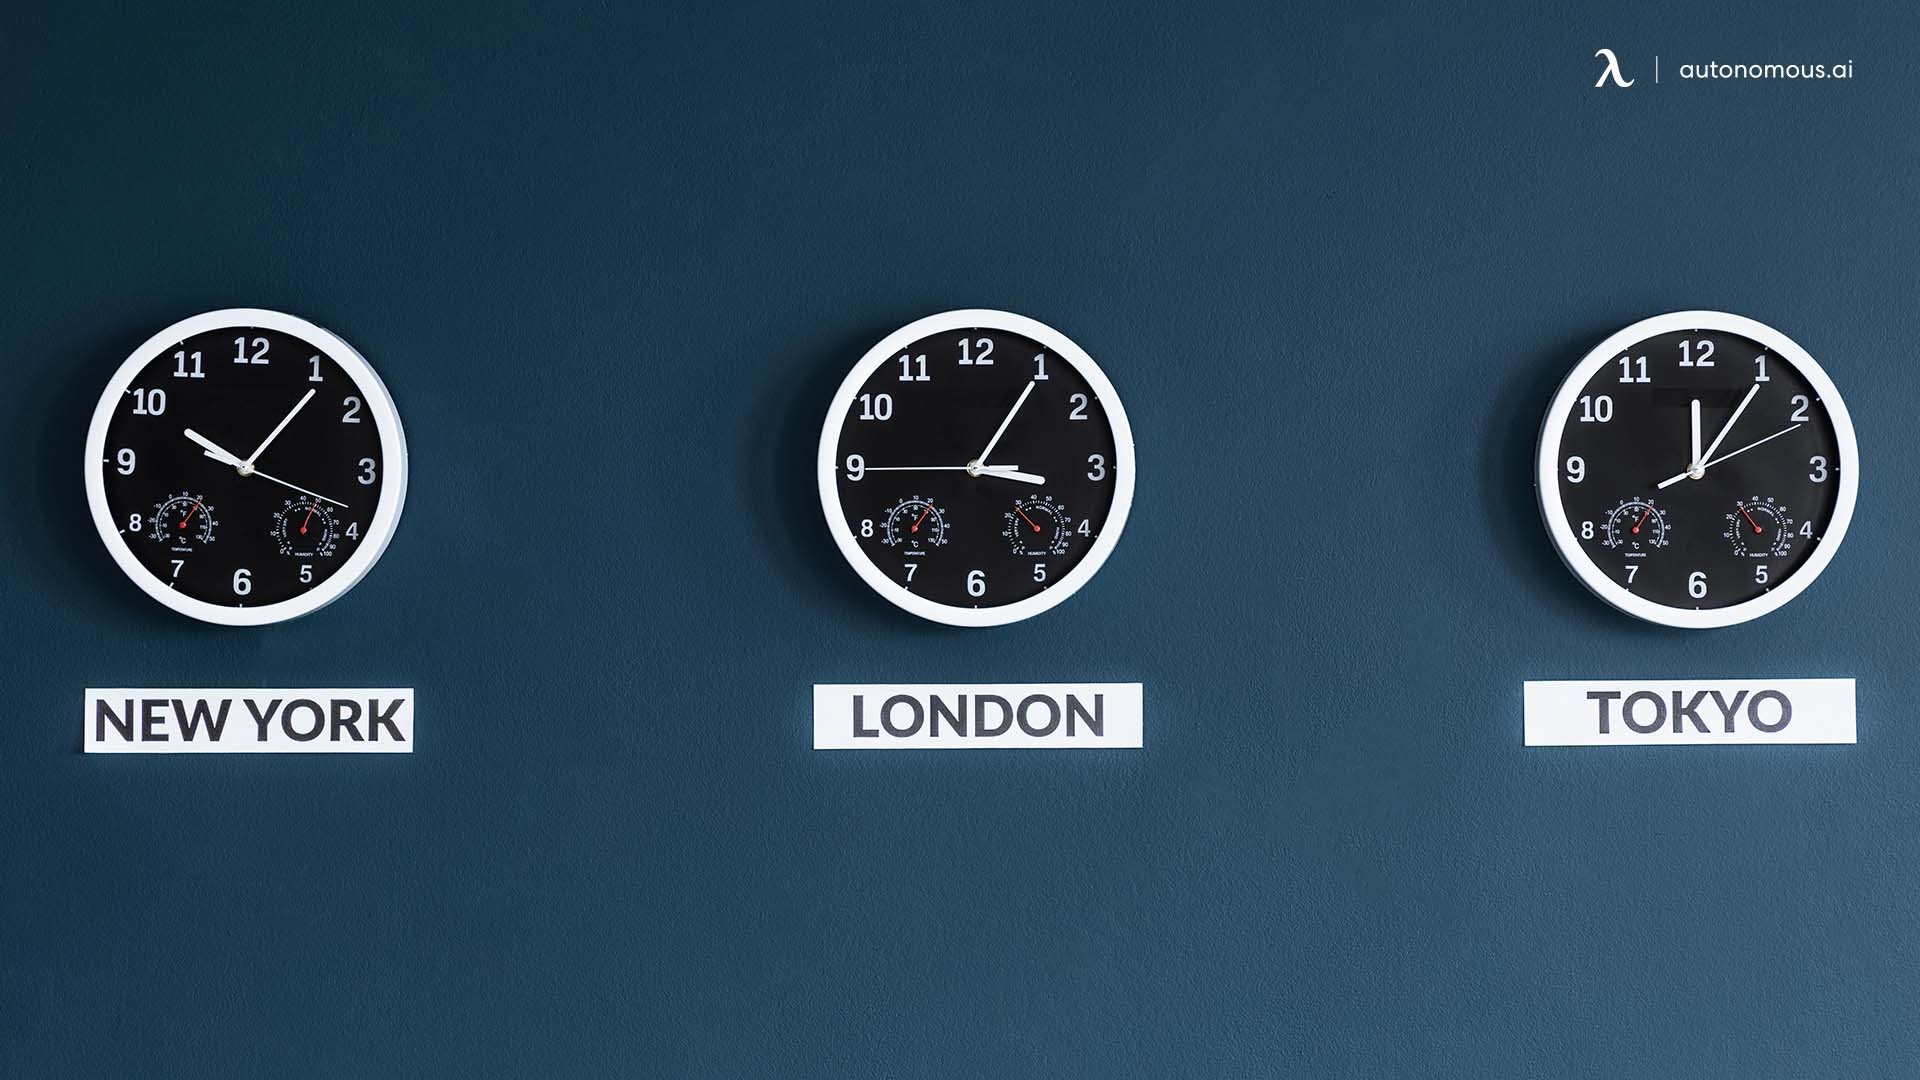 Matching up time zones